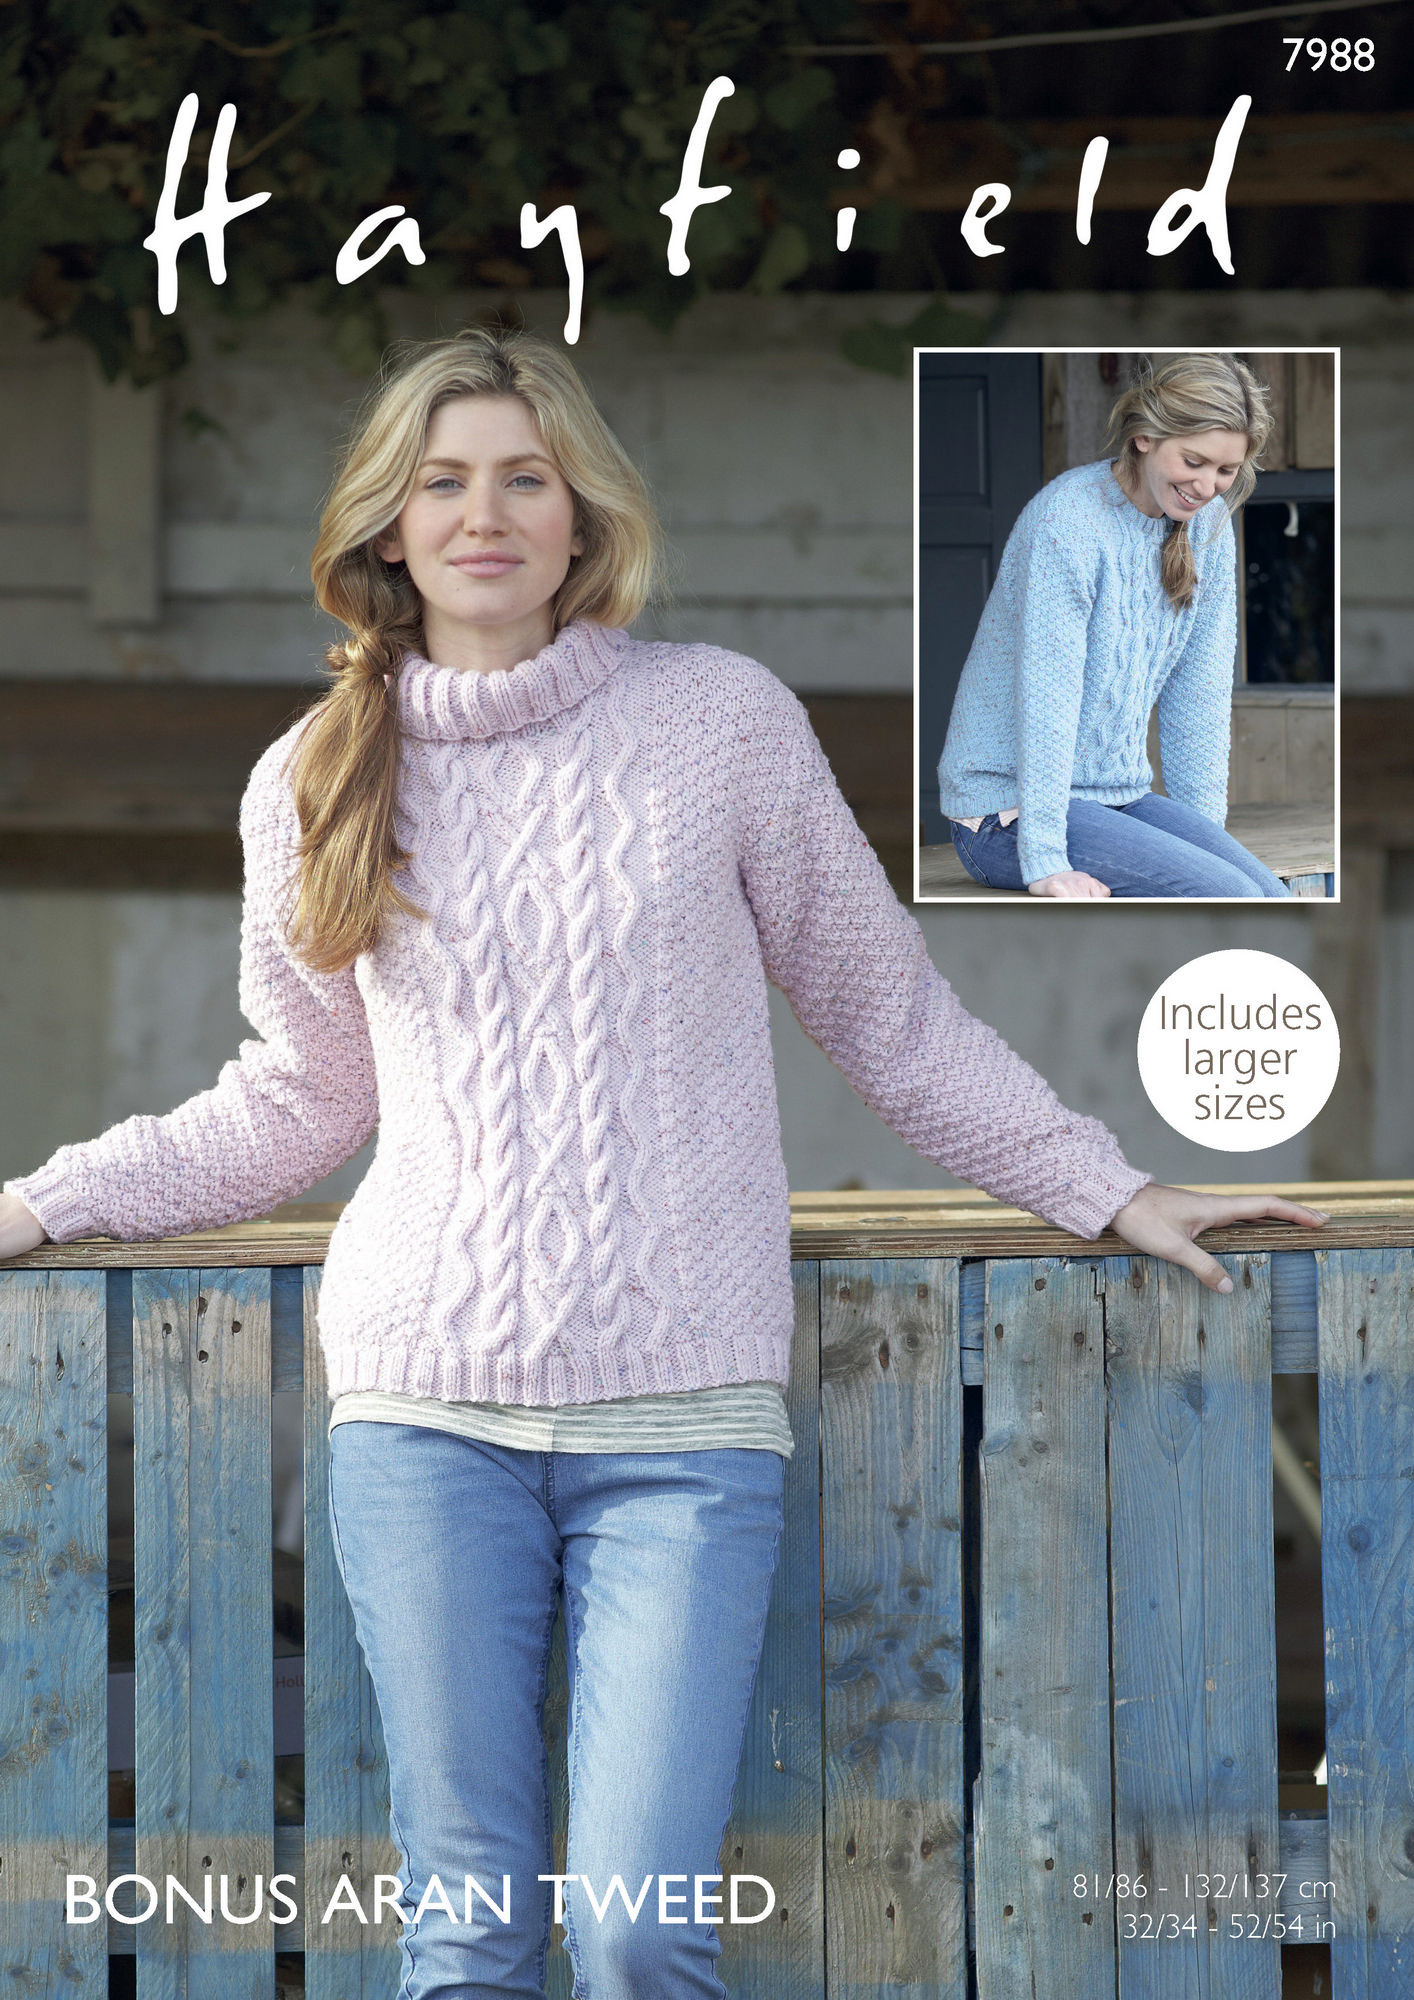 Ladies Sweater in Hayfield Bonus Aran Tweed